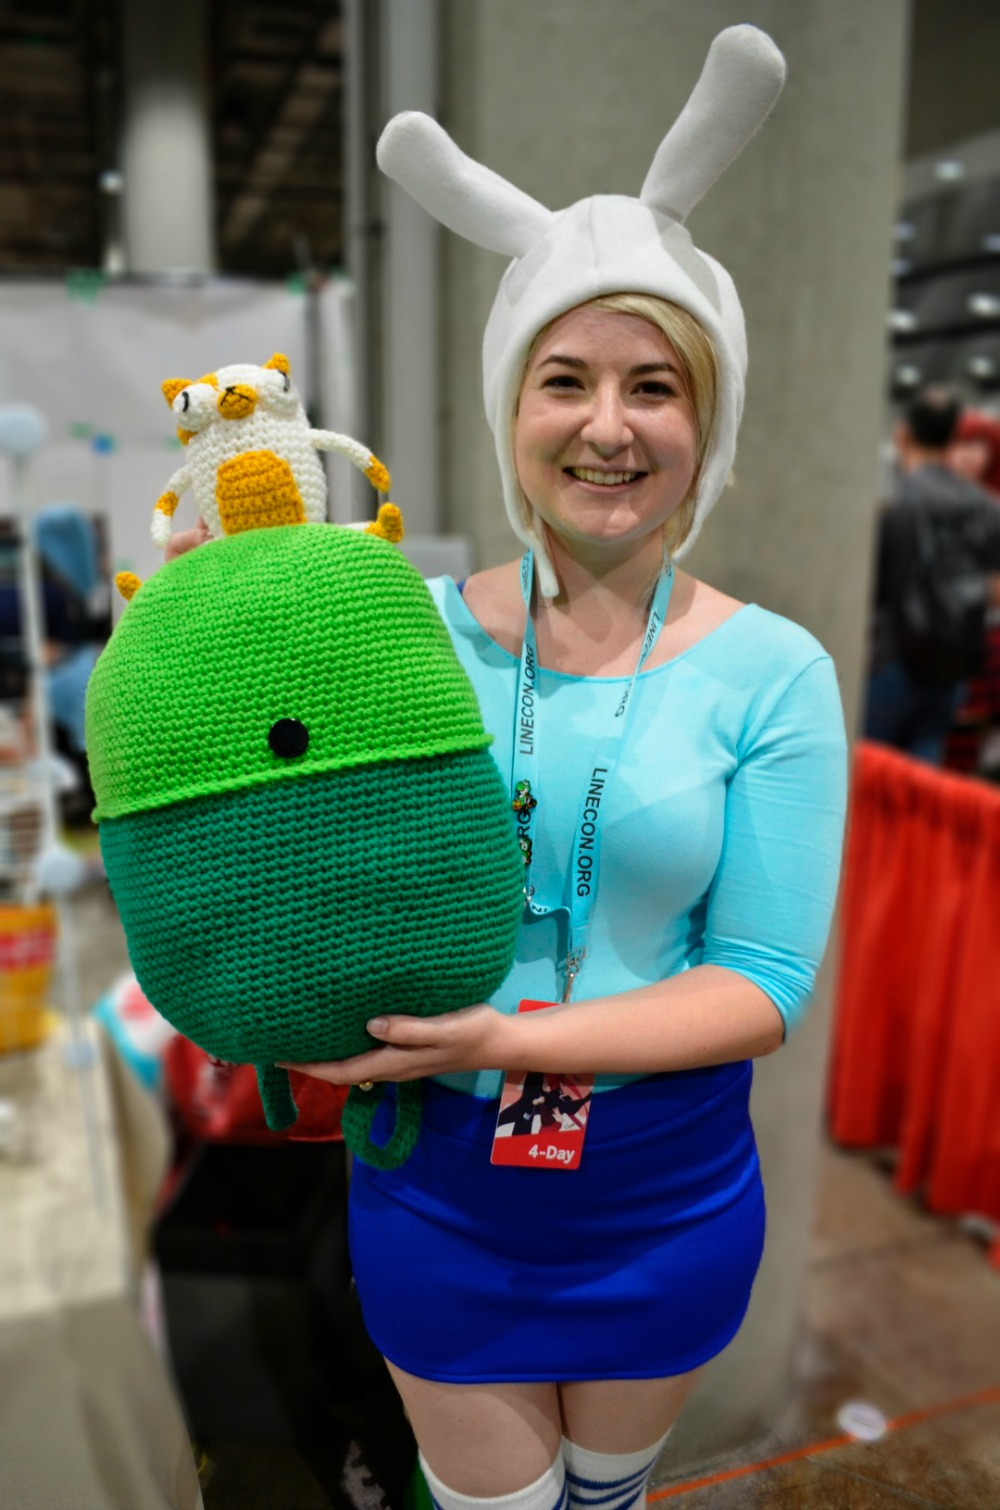 Fiona the Human Cosplay with crocheted Backpack and Cake the Cat Adventure Time